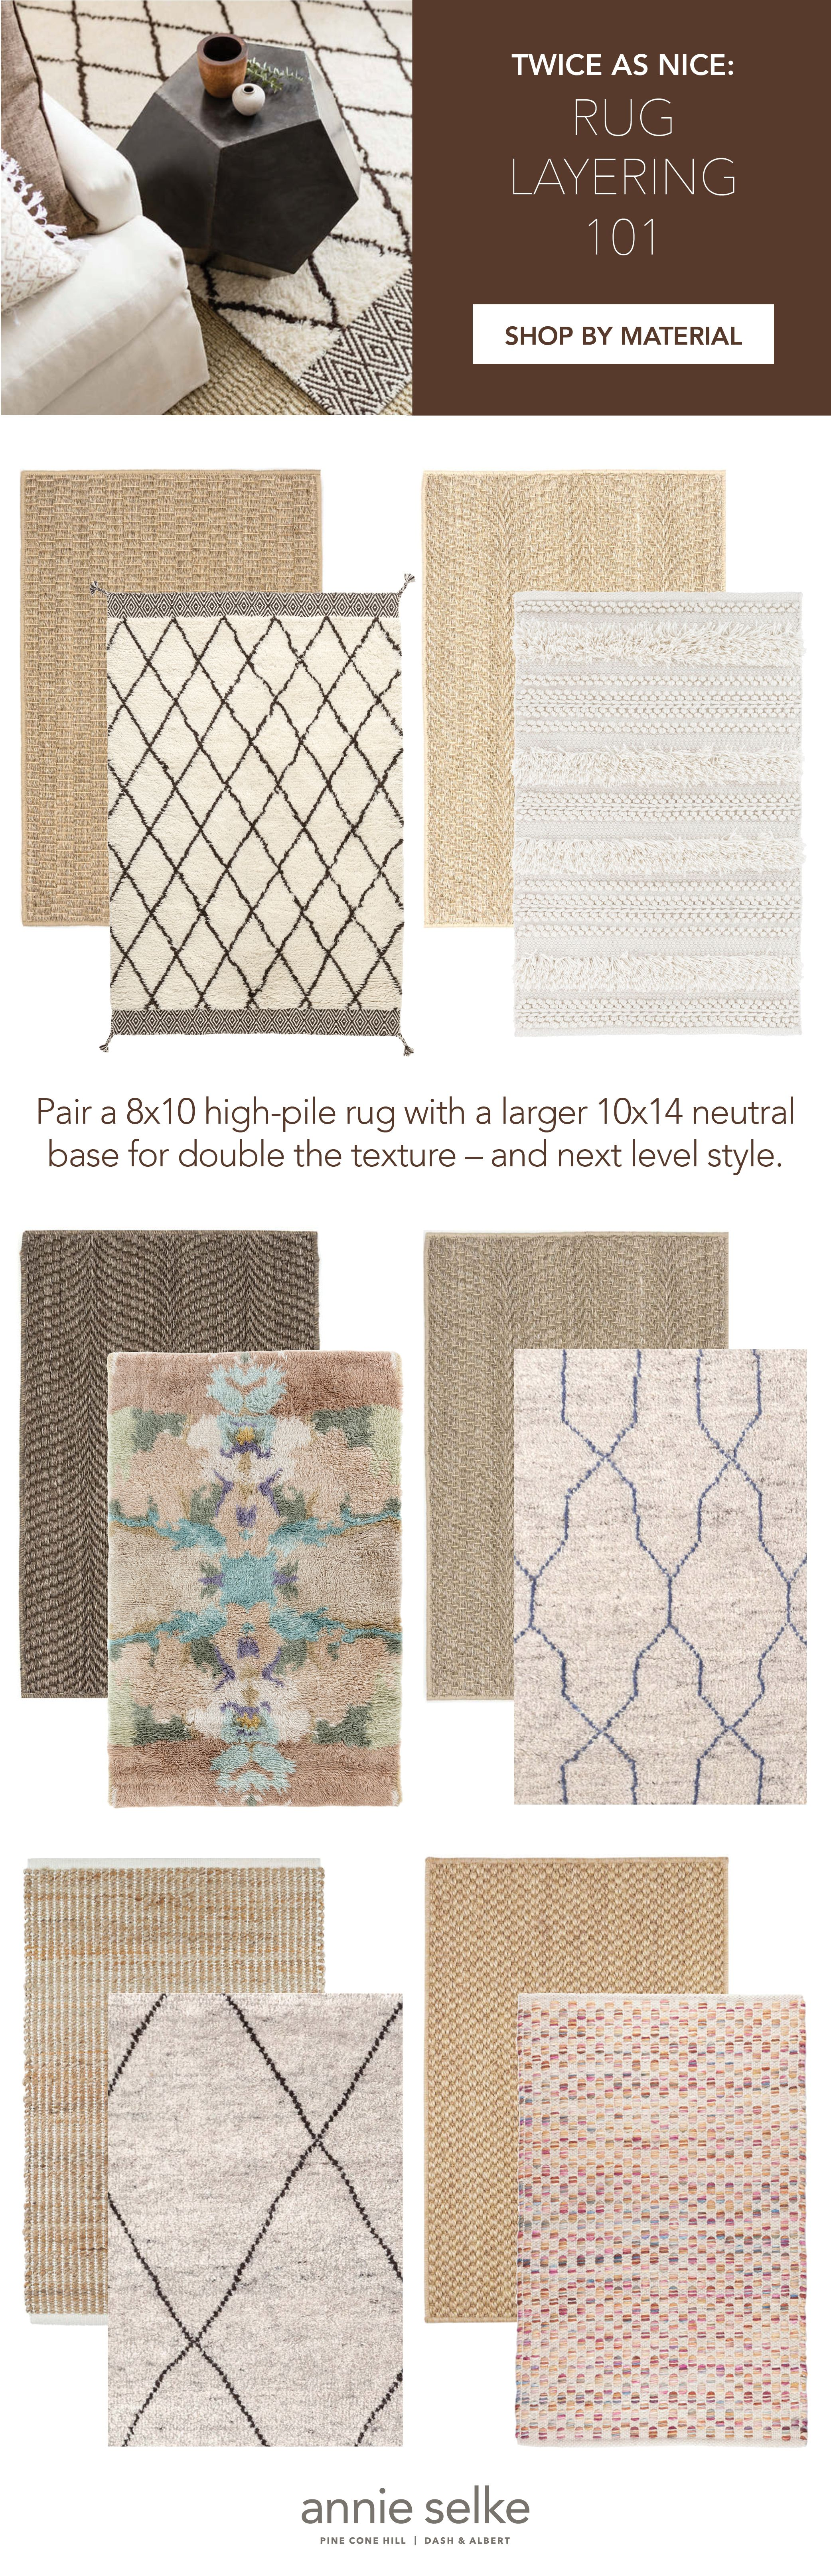 Rug Layering 101 In 2020 Layered Rugs Standard Rug Sizes Area Rug Sizes